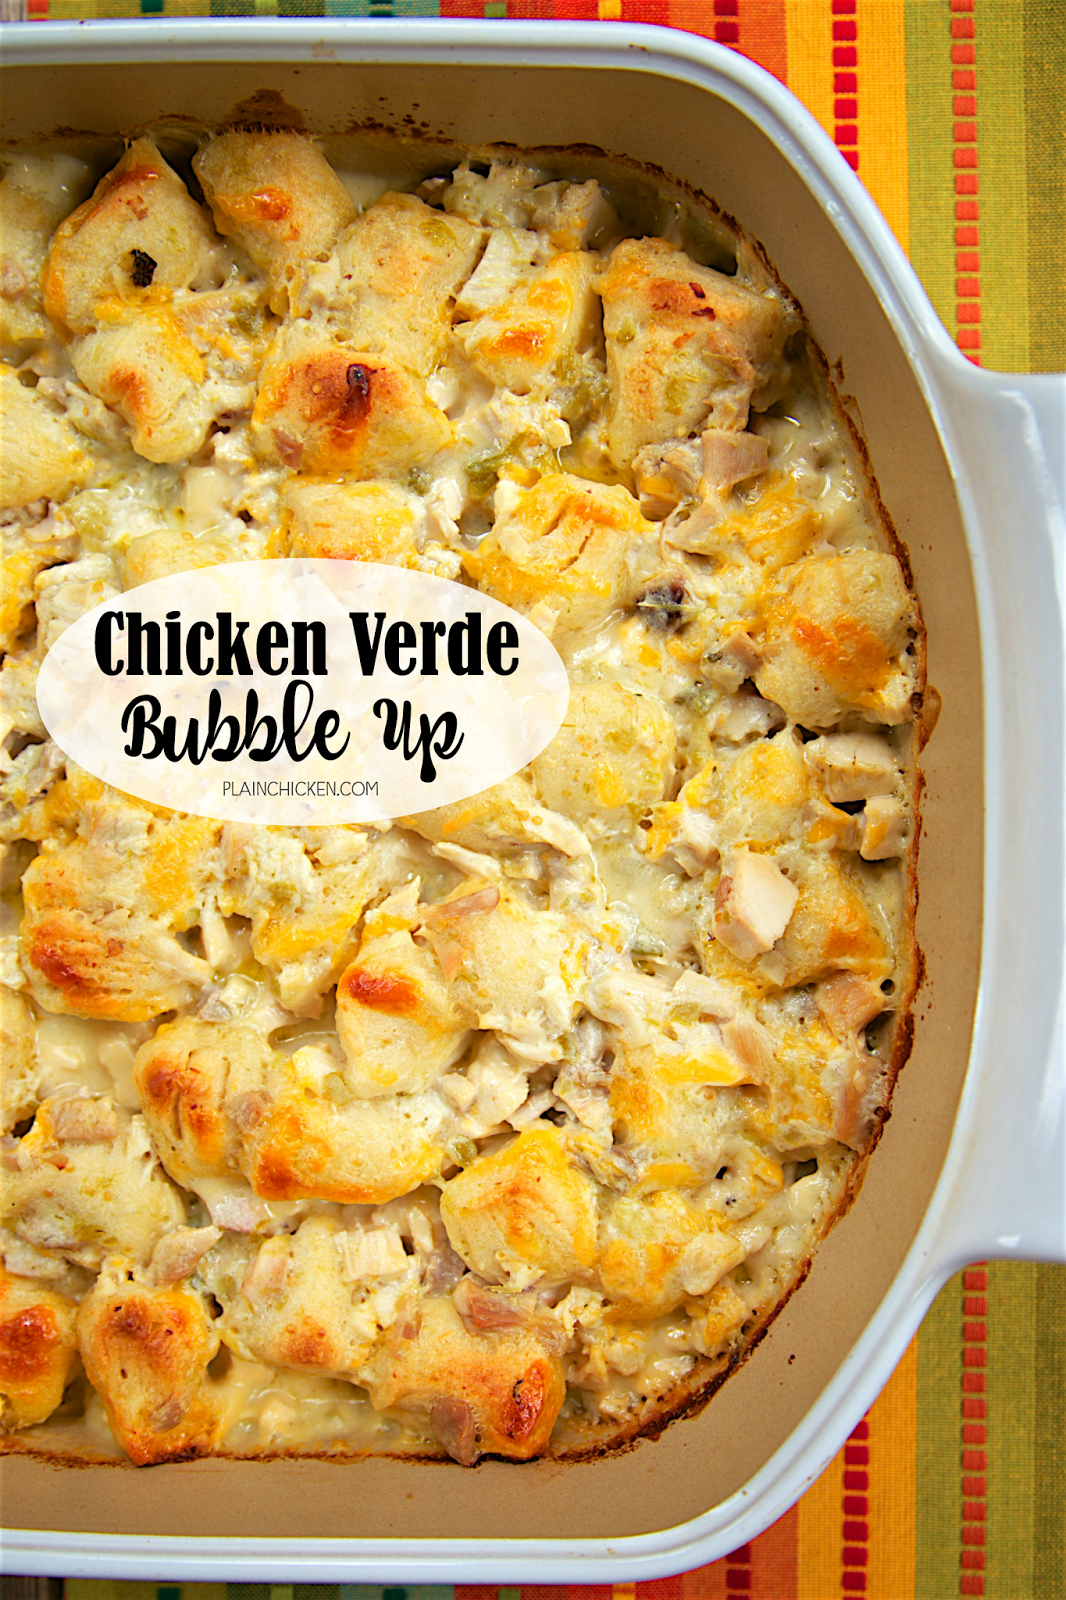 Chicken Verde Bubble Up - chicken, sour cream, milk, salsa verde, cheddar cheese and refrigerated biscuits. Ready in 30 minutes! Mexican casserole with chicken, cheese and chopped biscuits tossed in a quick homemade sour cream salsa verde sauce. SOOO delicious! Everyone cleaned their plate and went back for seconds! Crazy good!